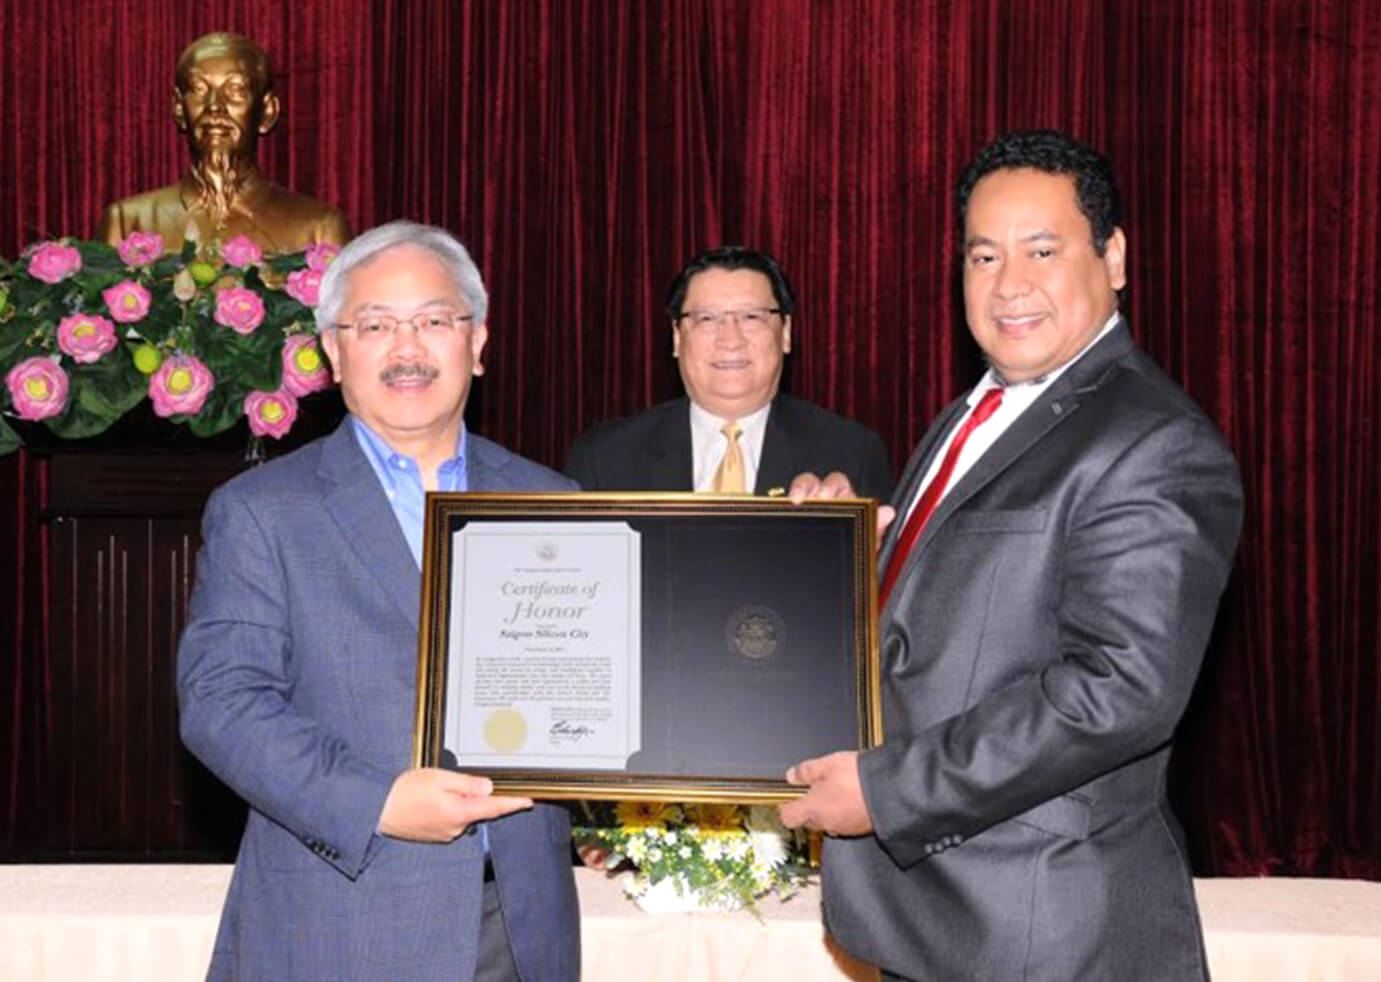 Mayor of San Francisco (USA) awarded Sai Gon Silicon City certificate in Ho Chi Minh City